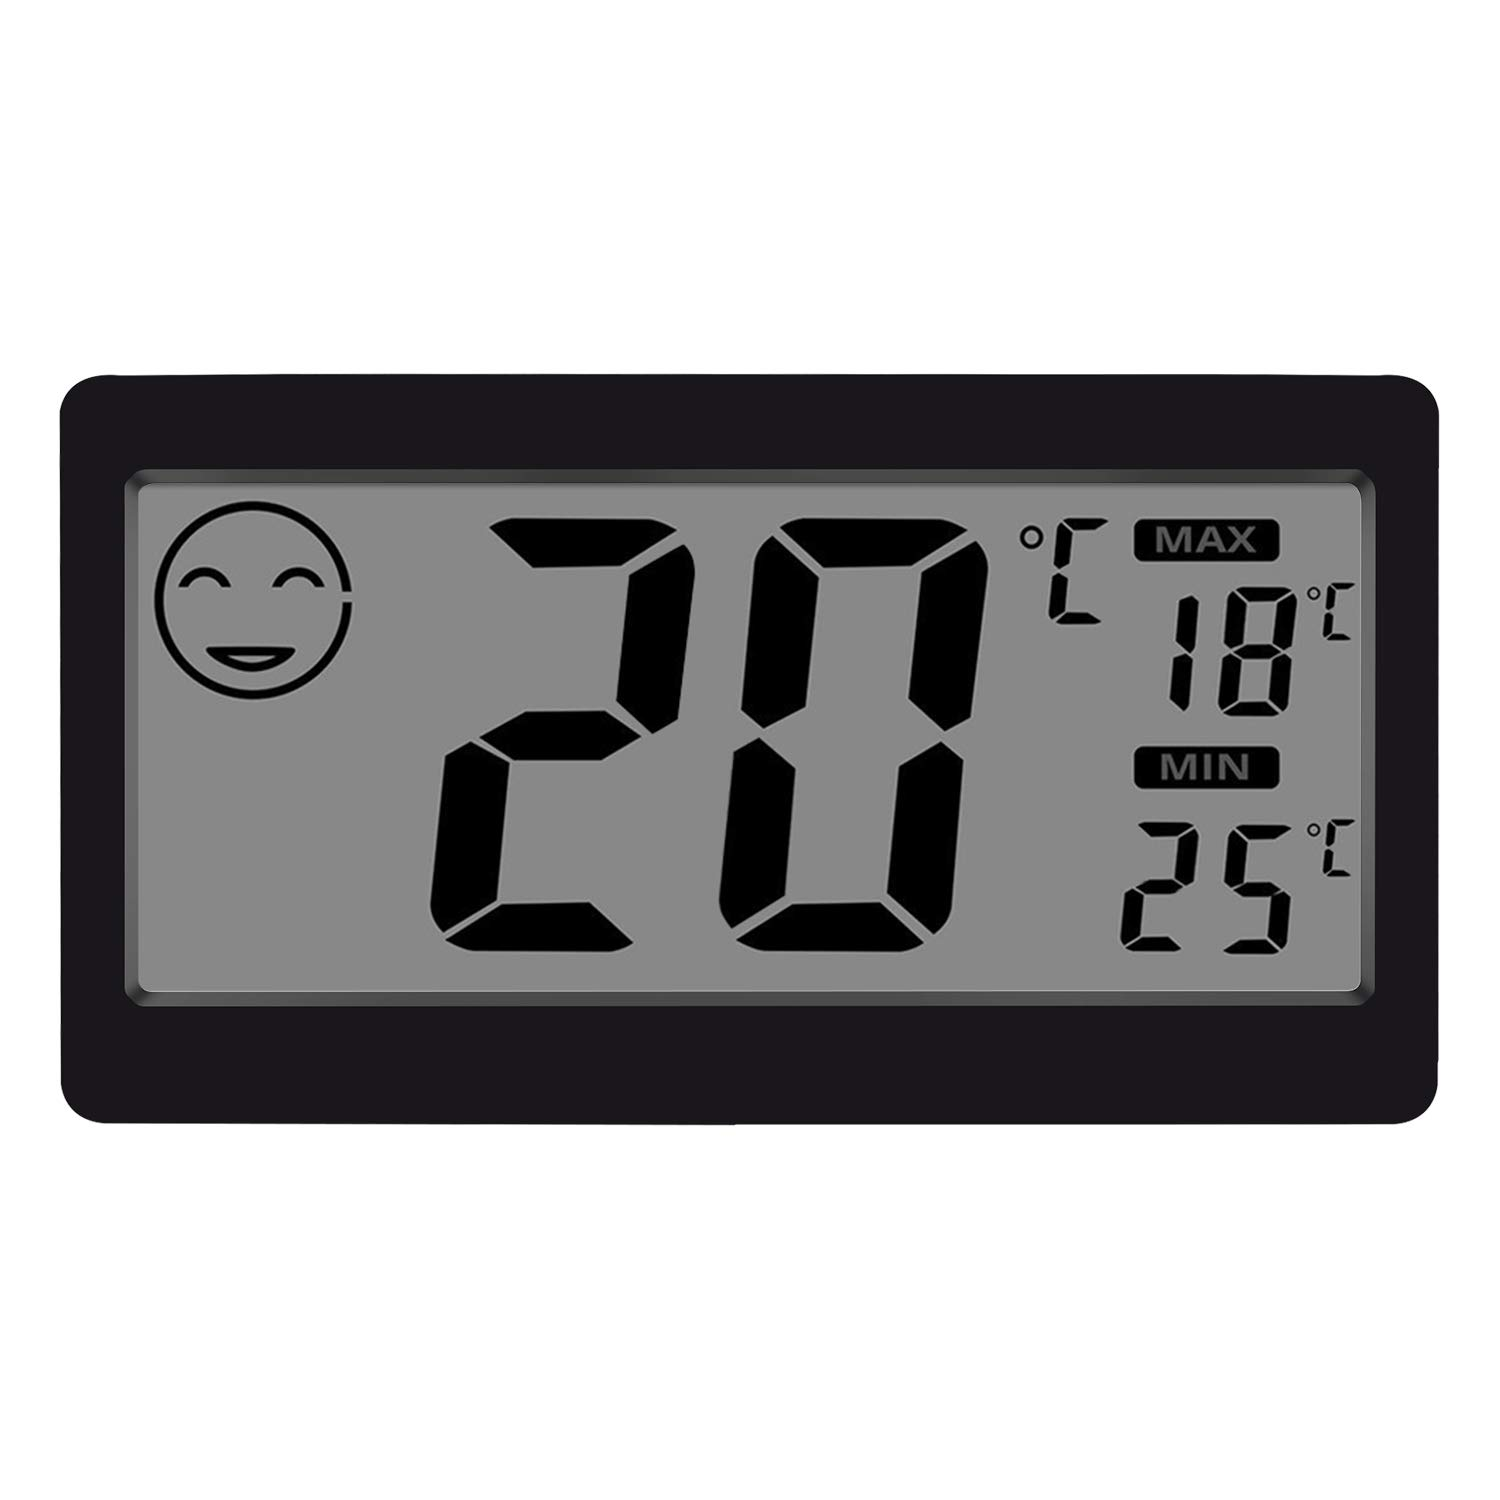 Gellvann Digital Indoor Thermometer Hygrometer Temperature and Humidity Display with 3.3 inch LCD Table Standing Magnet Attaching for Household Office Gym Kitchen (1) TopXun